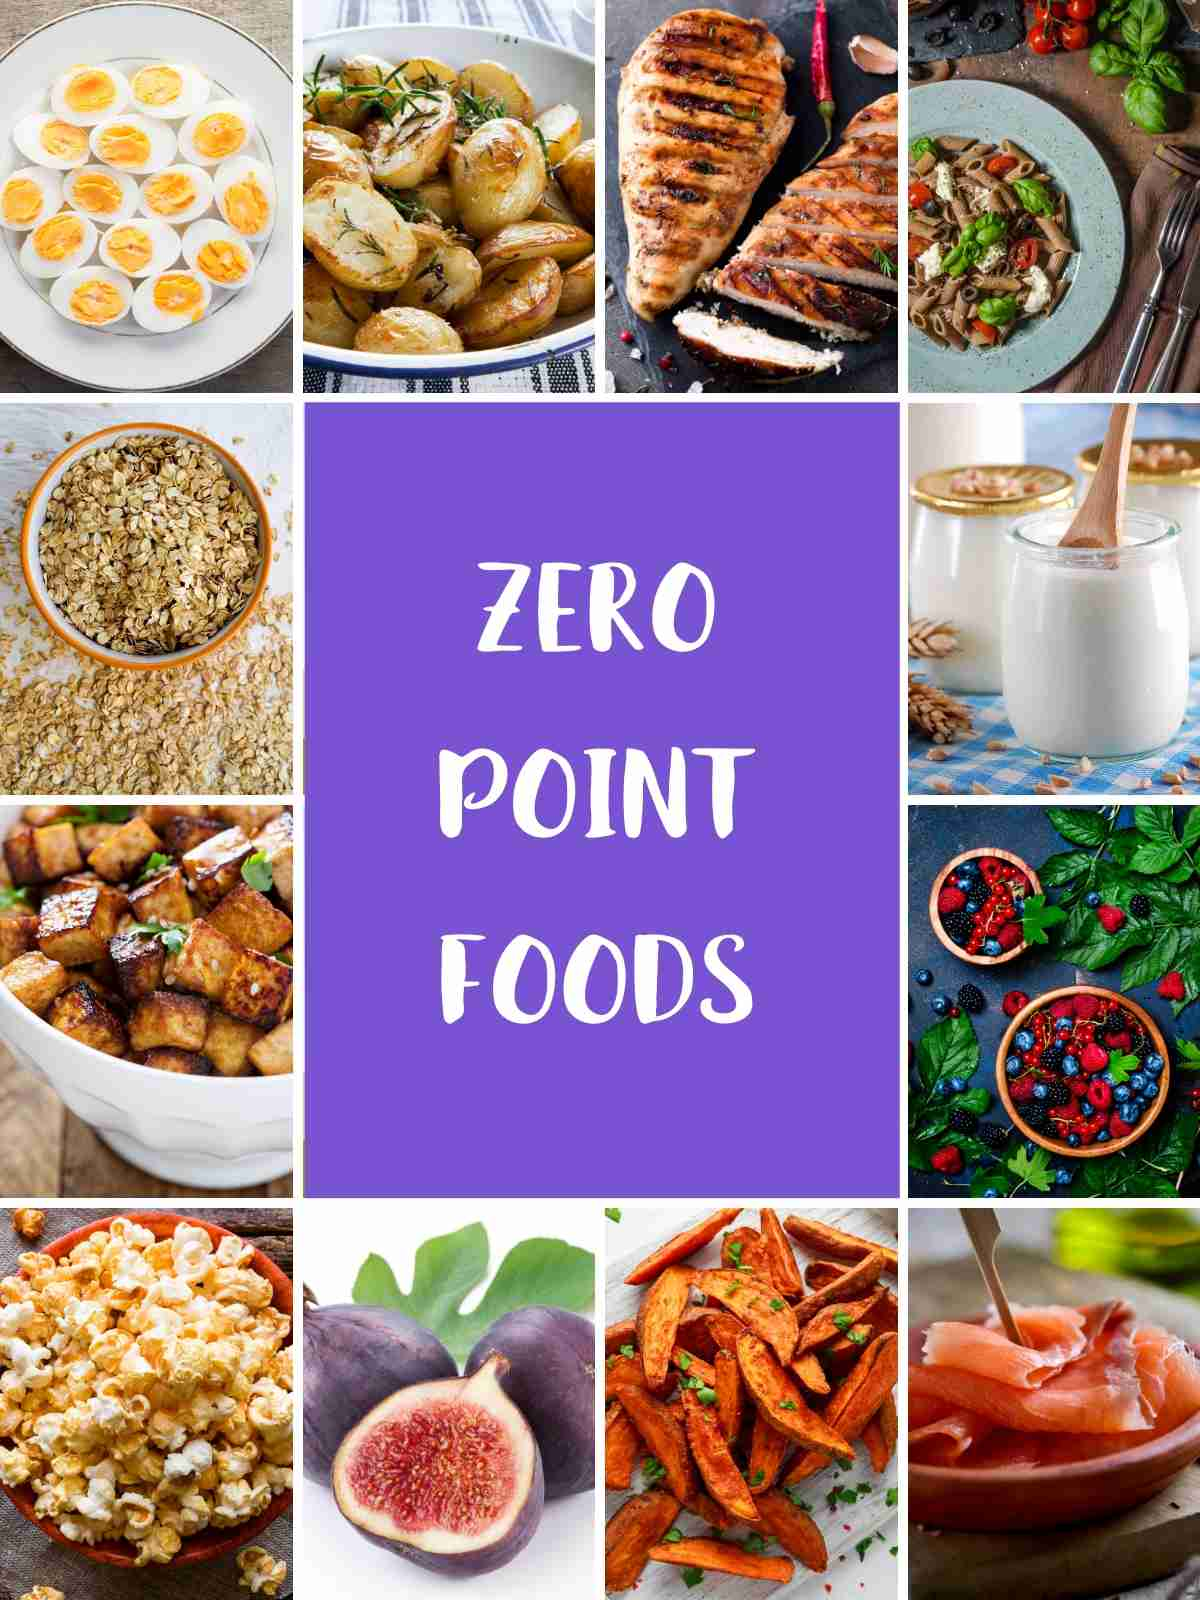 A collage of picture of food that are zero smartpoints on the Purple plan including potatoes, sweet potatoes, chicken, eggs and oats.